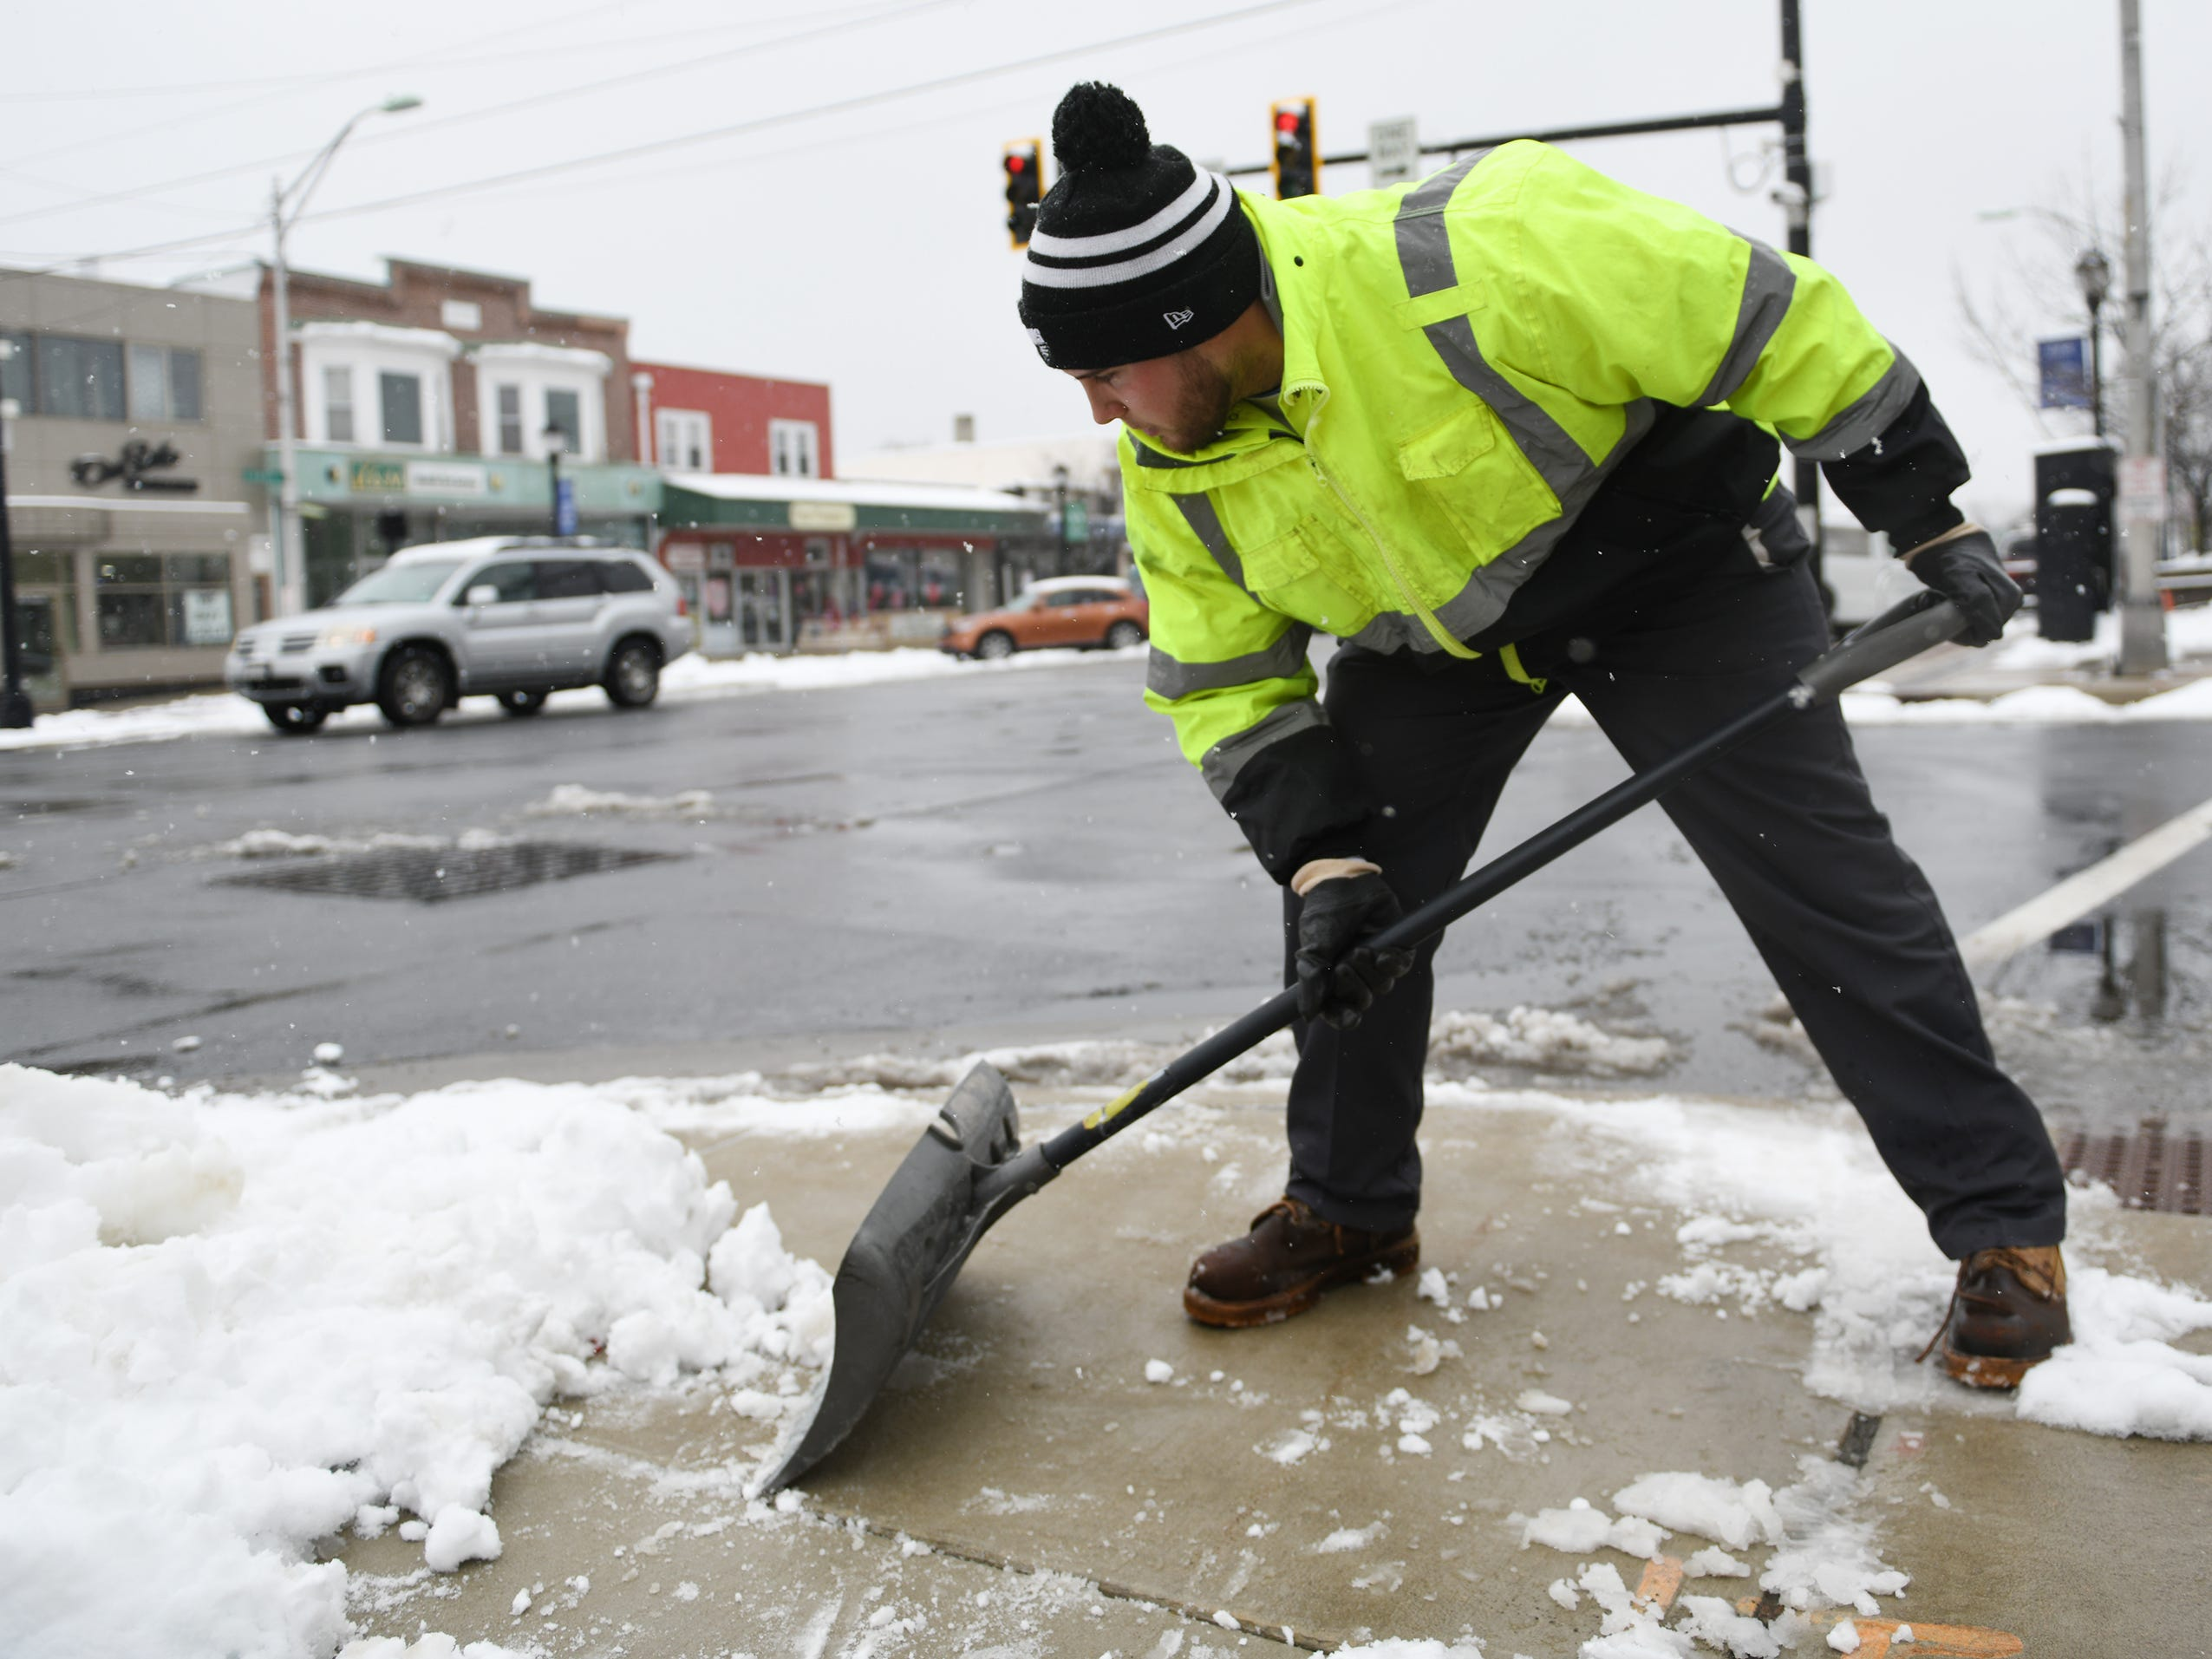 City of Vineland Public Works employee Jeff Valdiseri, 20, shovels snow from crosswalks on Landis Avenue on Monday, Feb. 11, 2019.